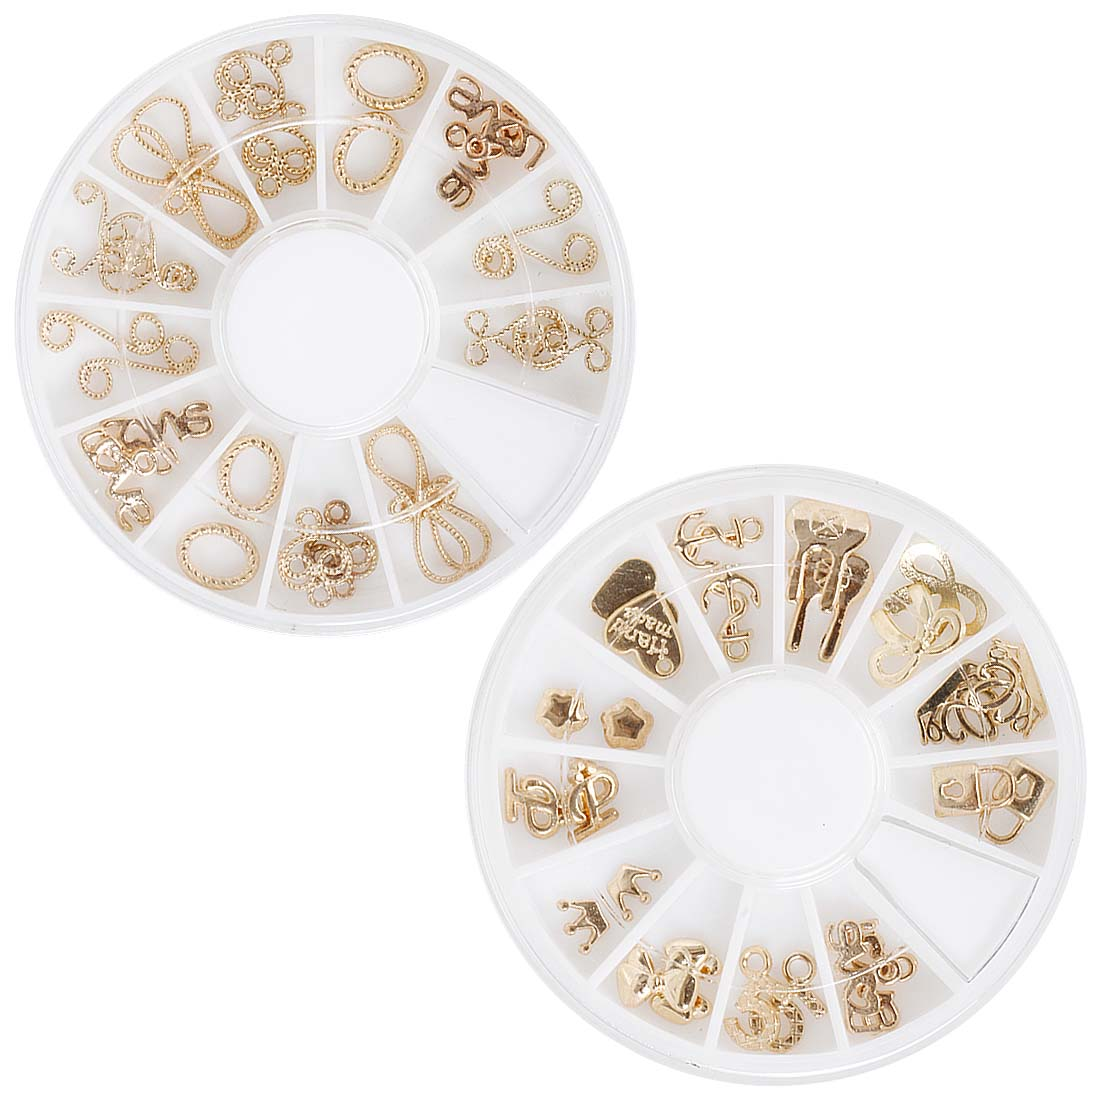 Maniology (formerly bmc) Super Cute 48pc Mixed 3D Gold Metal Frames and Charms Nail Polish Art Accessory 2 Wheel Set